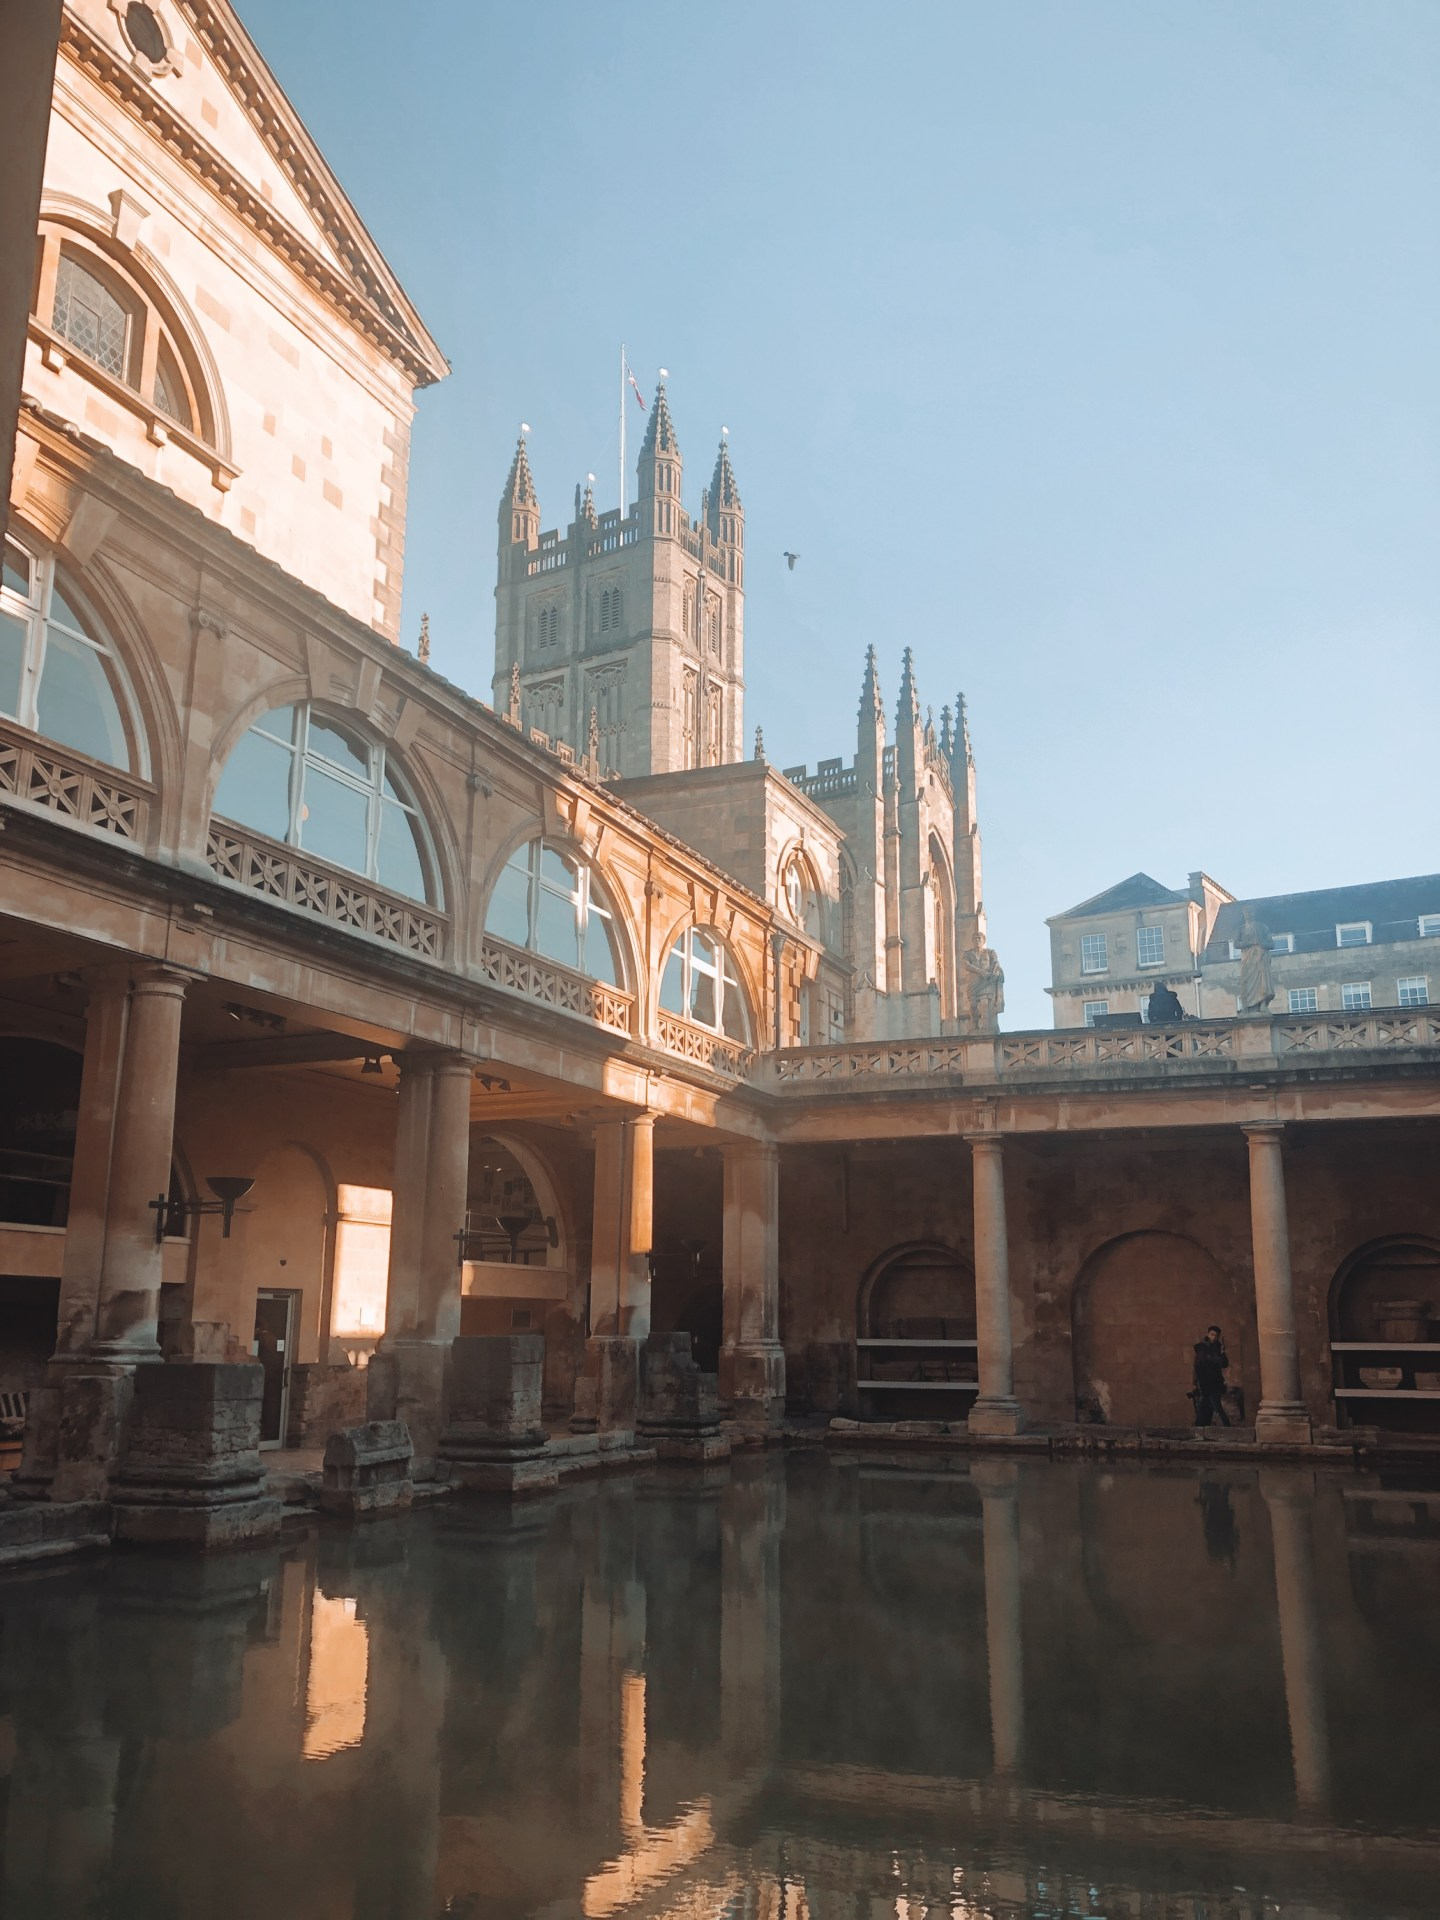 24 hours in bath Roman baths bath trip doseofbtravels travel blogger